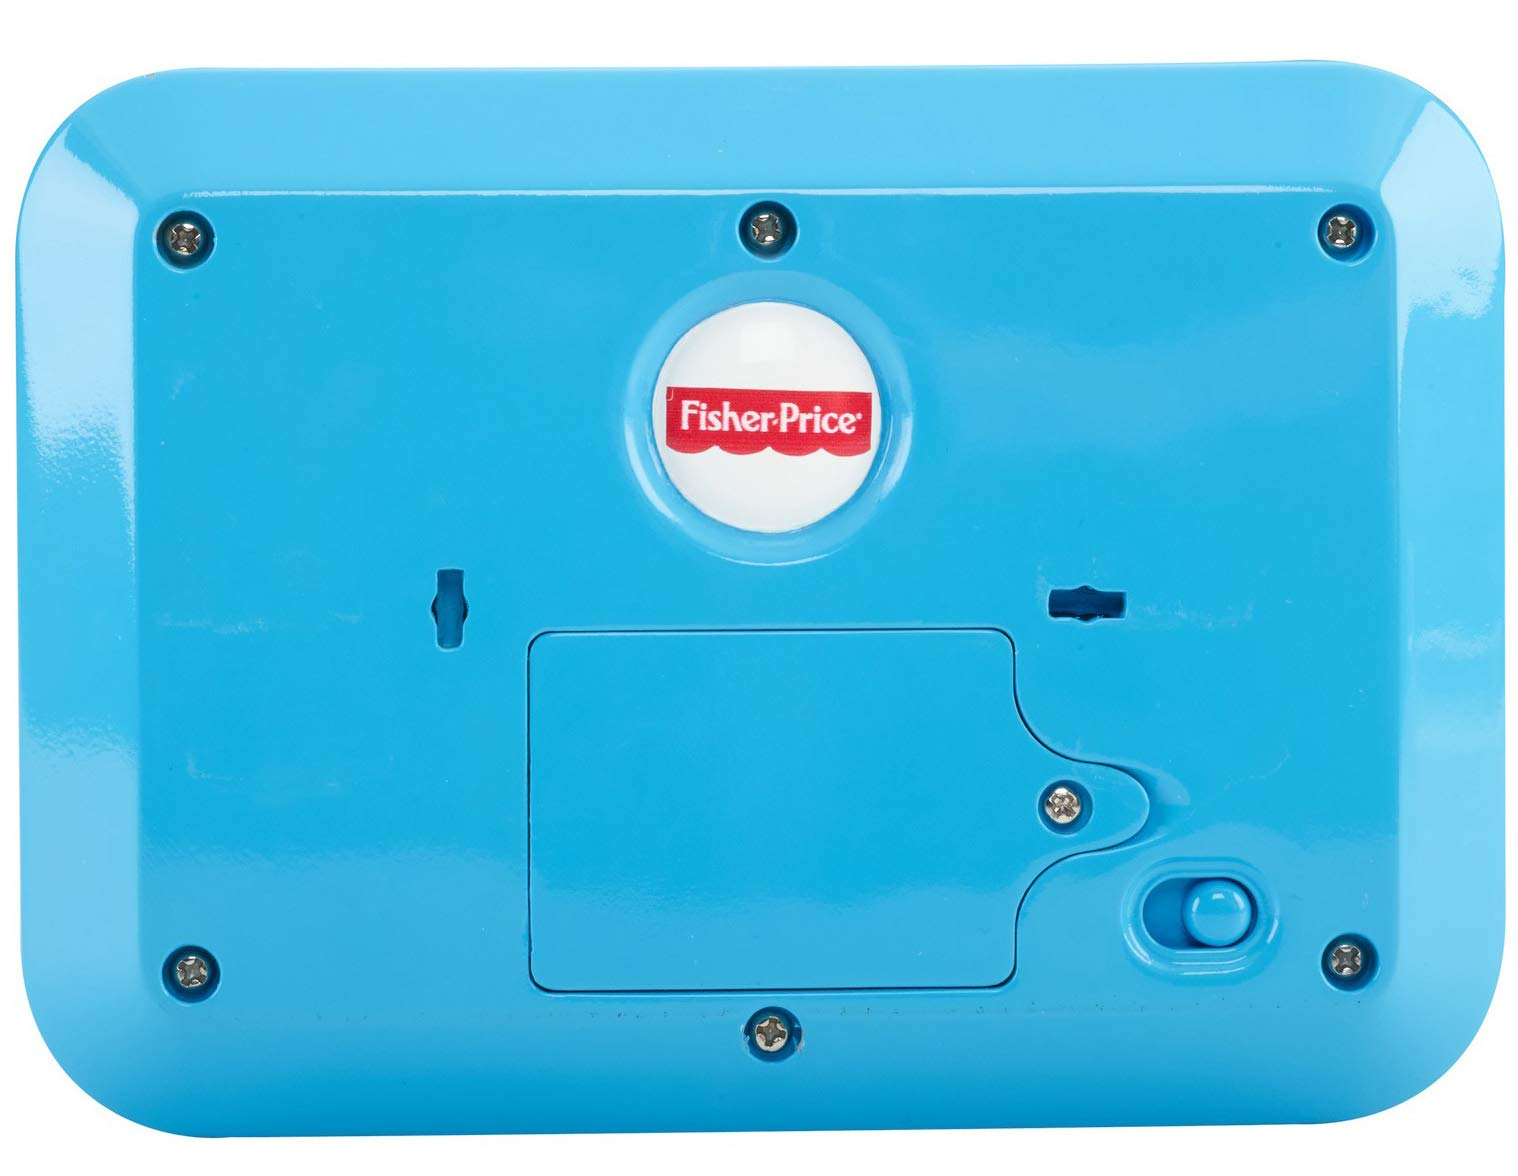 Fisher-Price Laugh & Learn Smart Stages Tablet, Blue by Fisher-Price (Image #6)